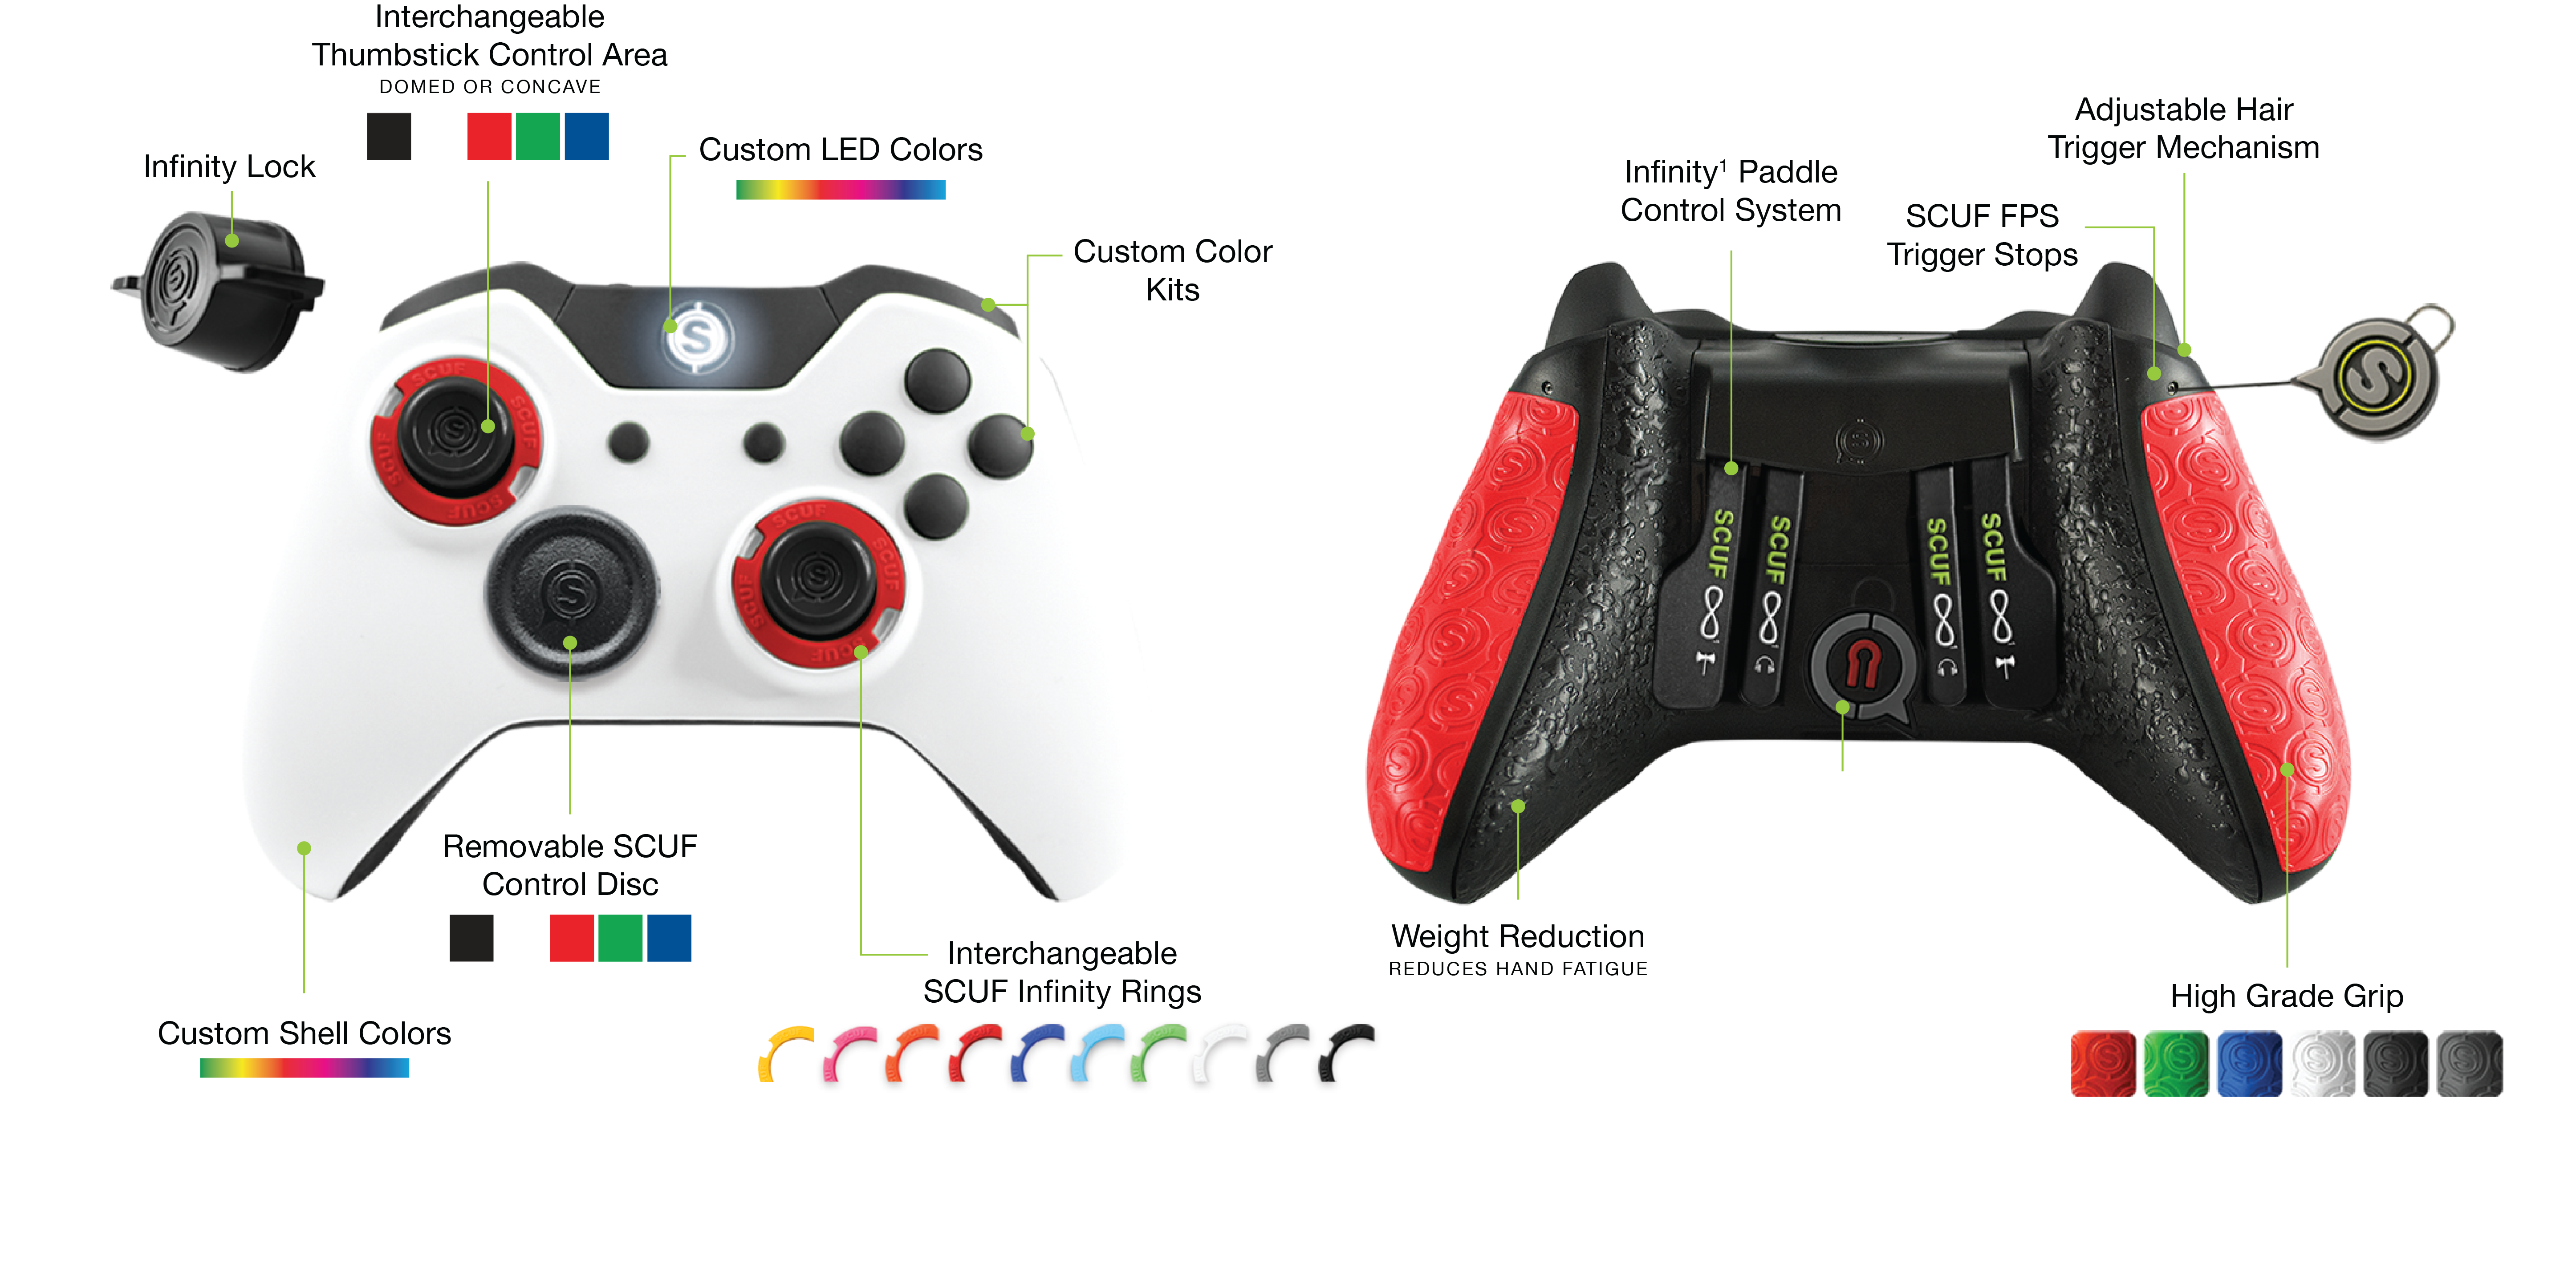 Controllerdiagramsinfinity1 scuf gaming custom controller esports esports event pro gamer controller accessories custom ps4 controllerdiagramsinfinity1 ccuart Images